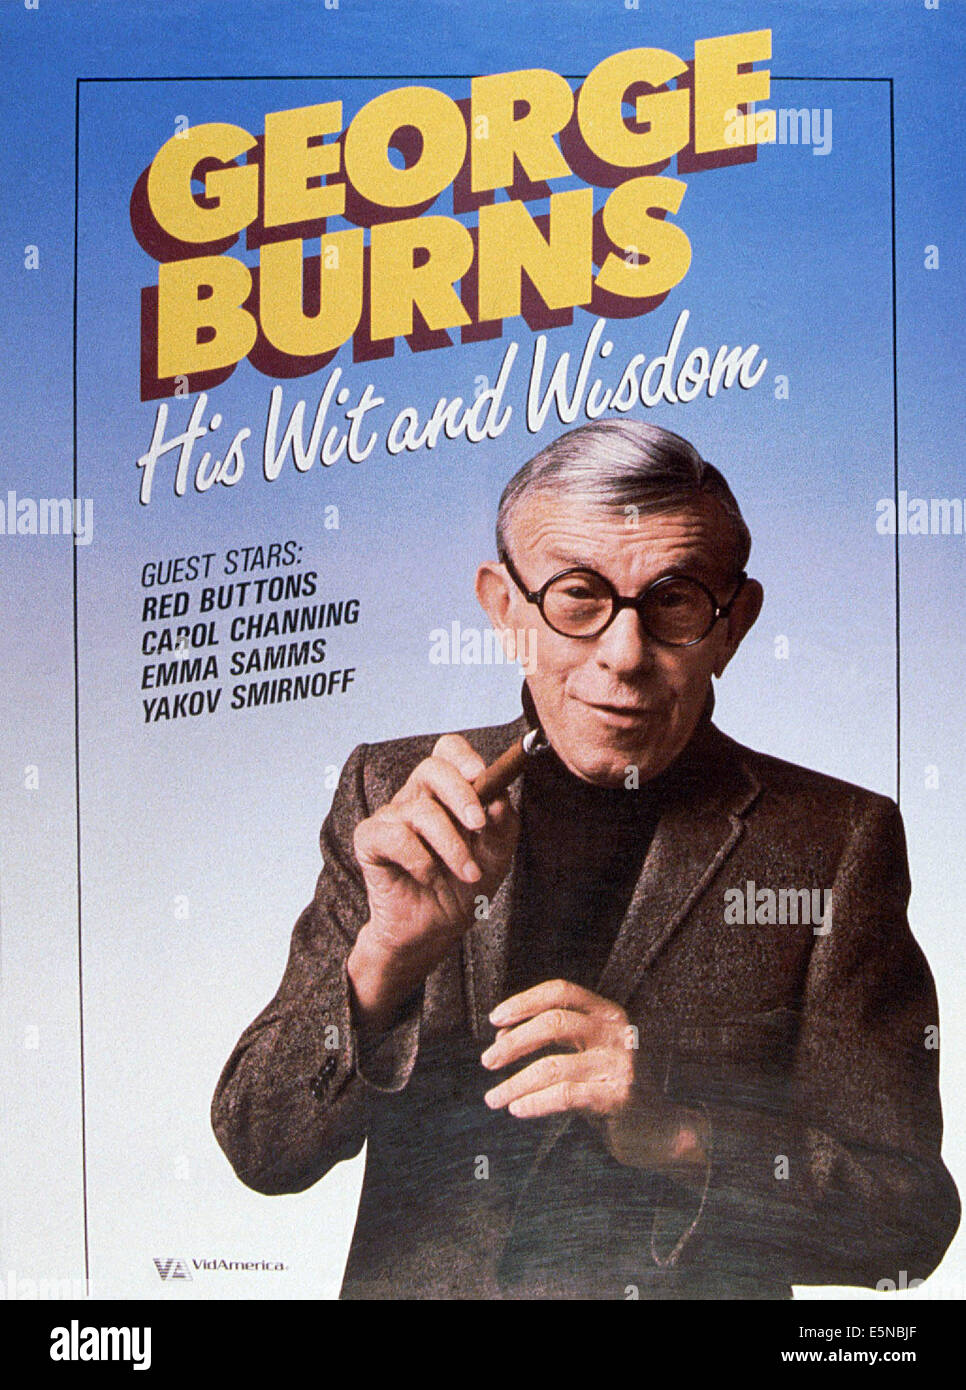 GEORGE BURNS - la sua intelligenza e saggezza, 1989 Immagini Stock